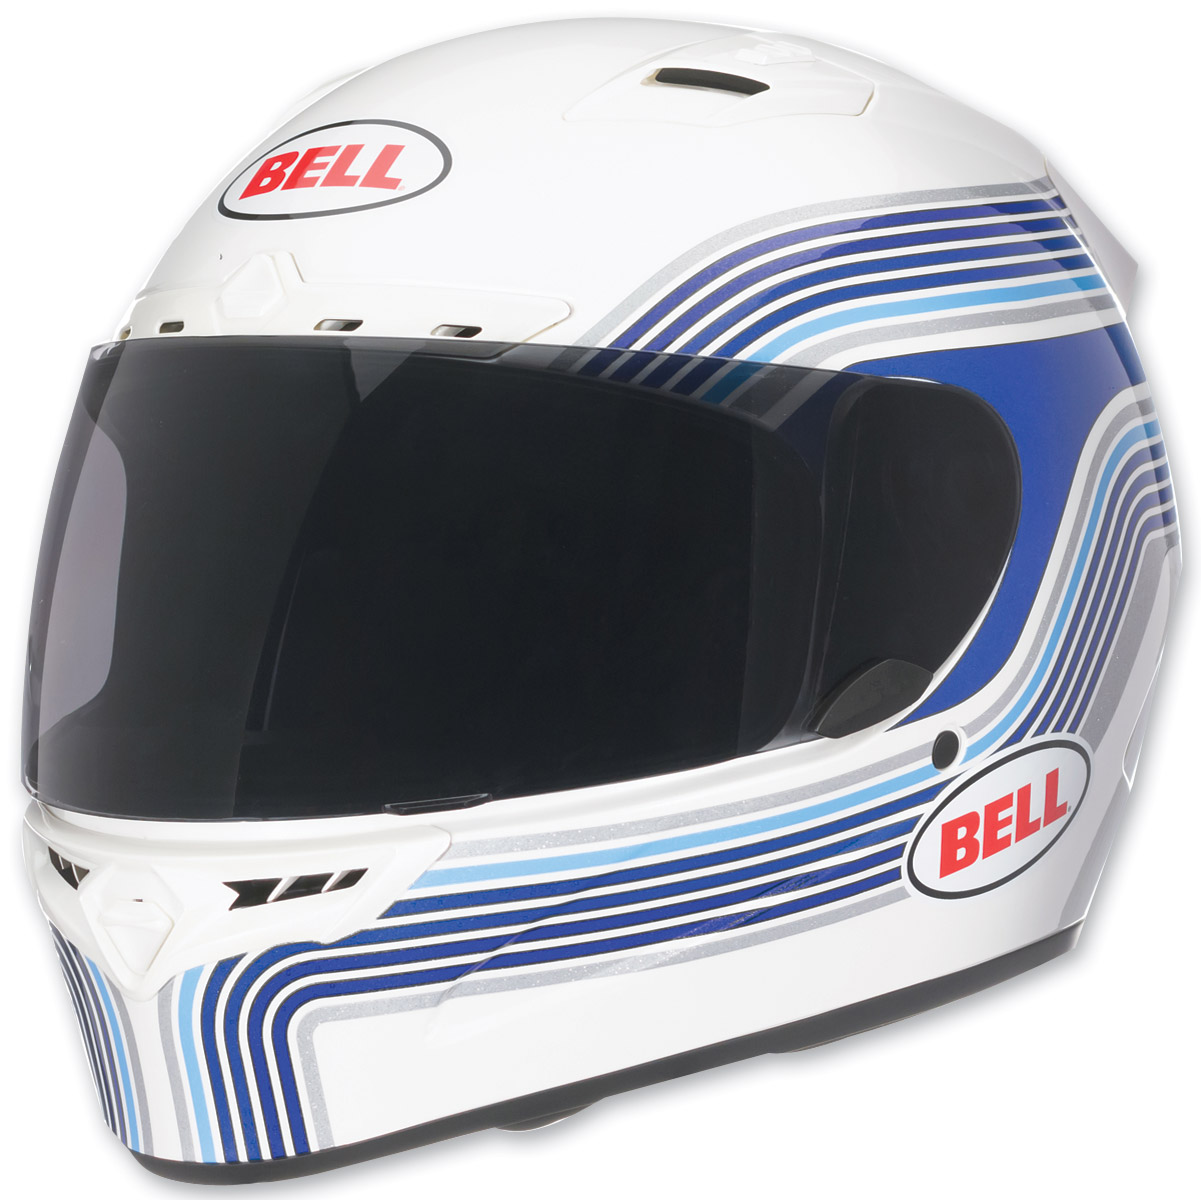 Bell Vortex Band White Full Face with Face Shield Helmet